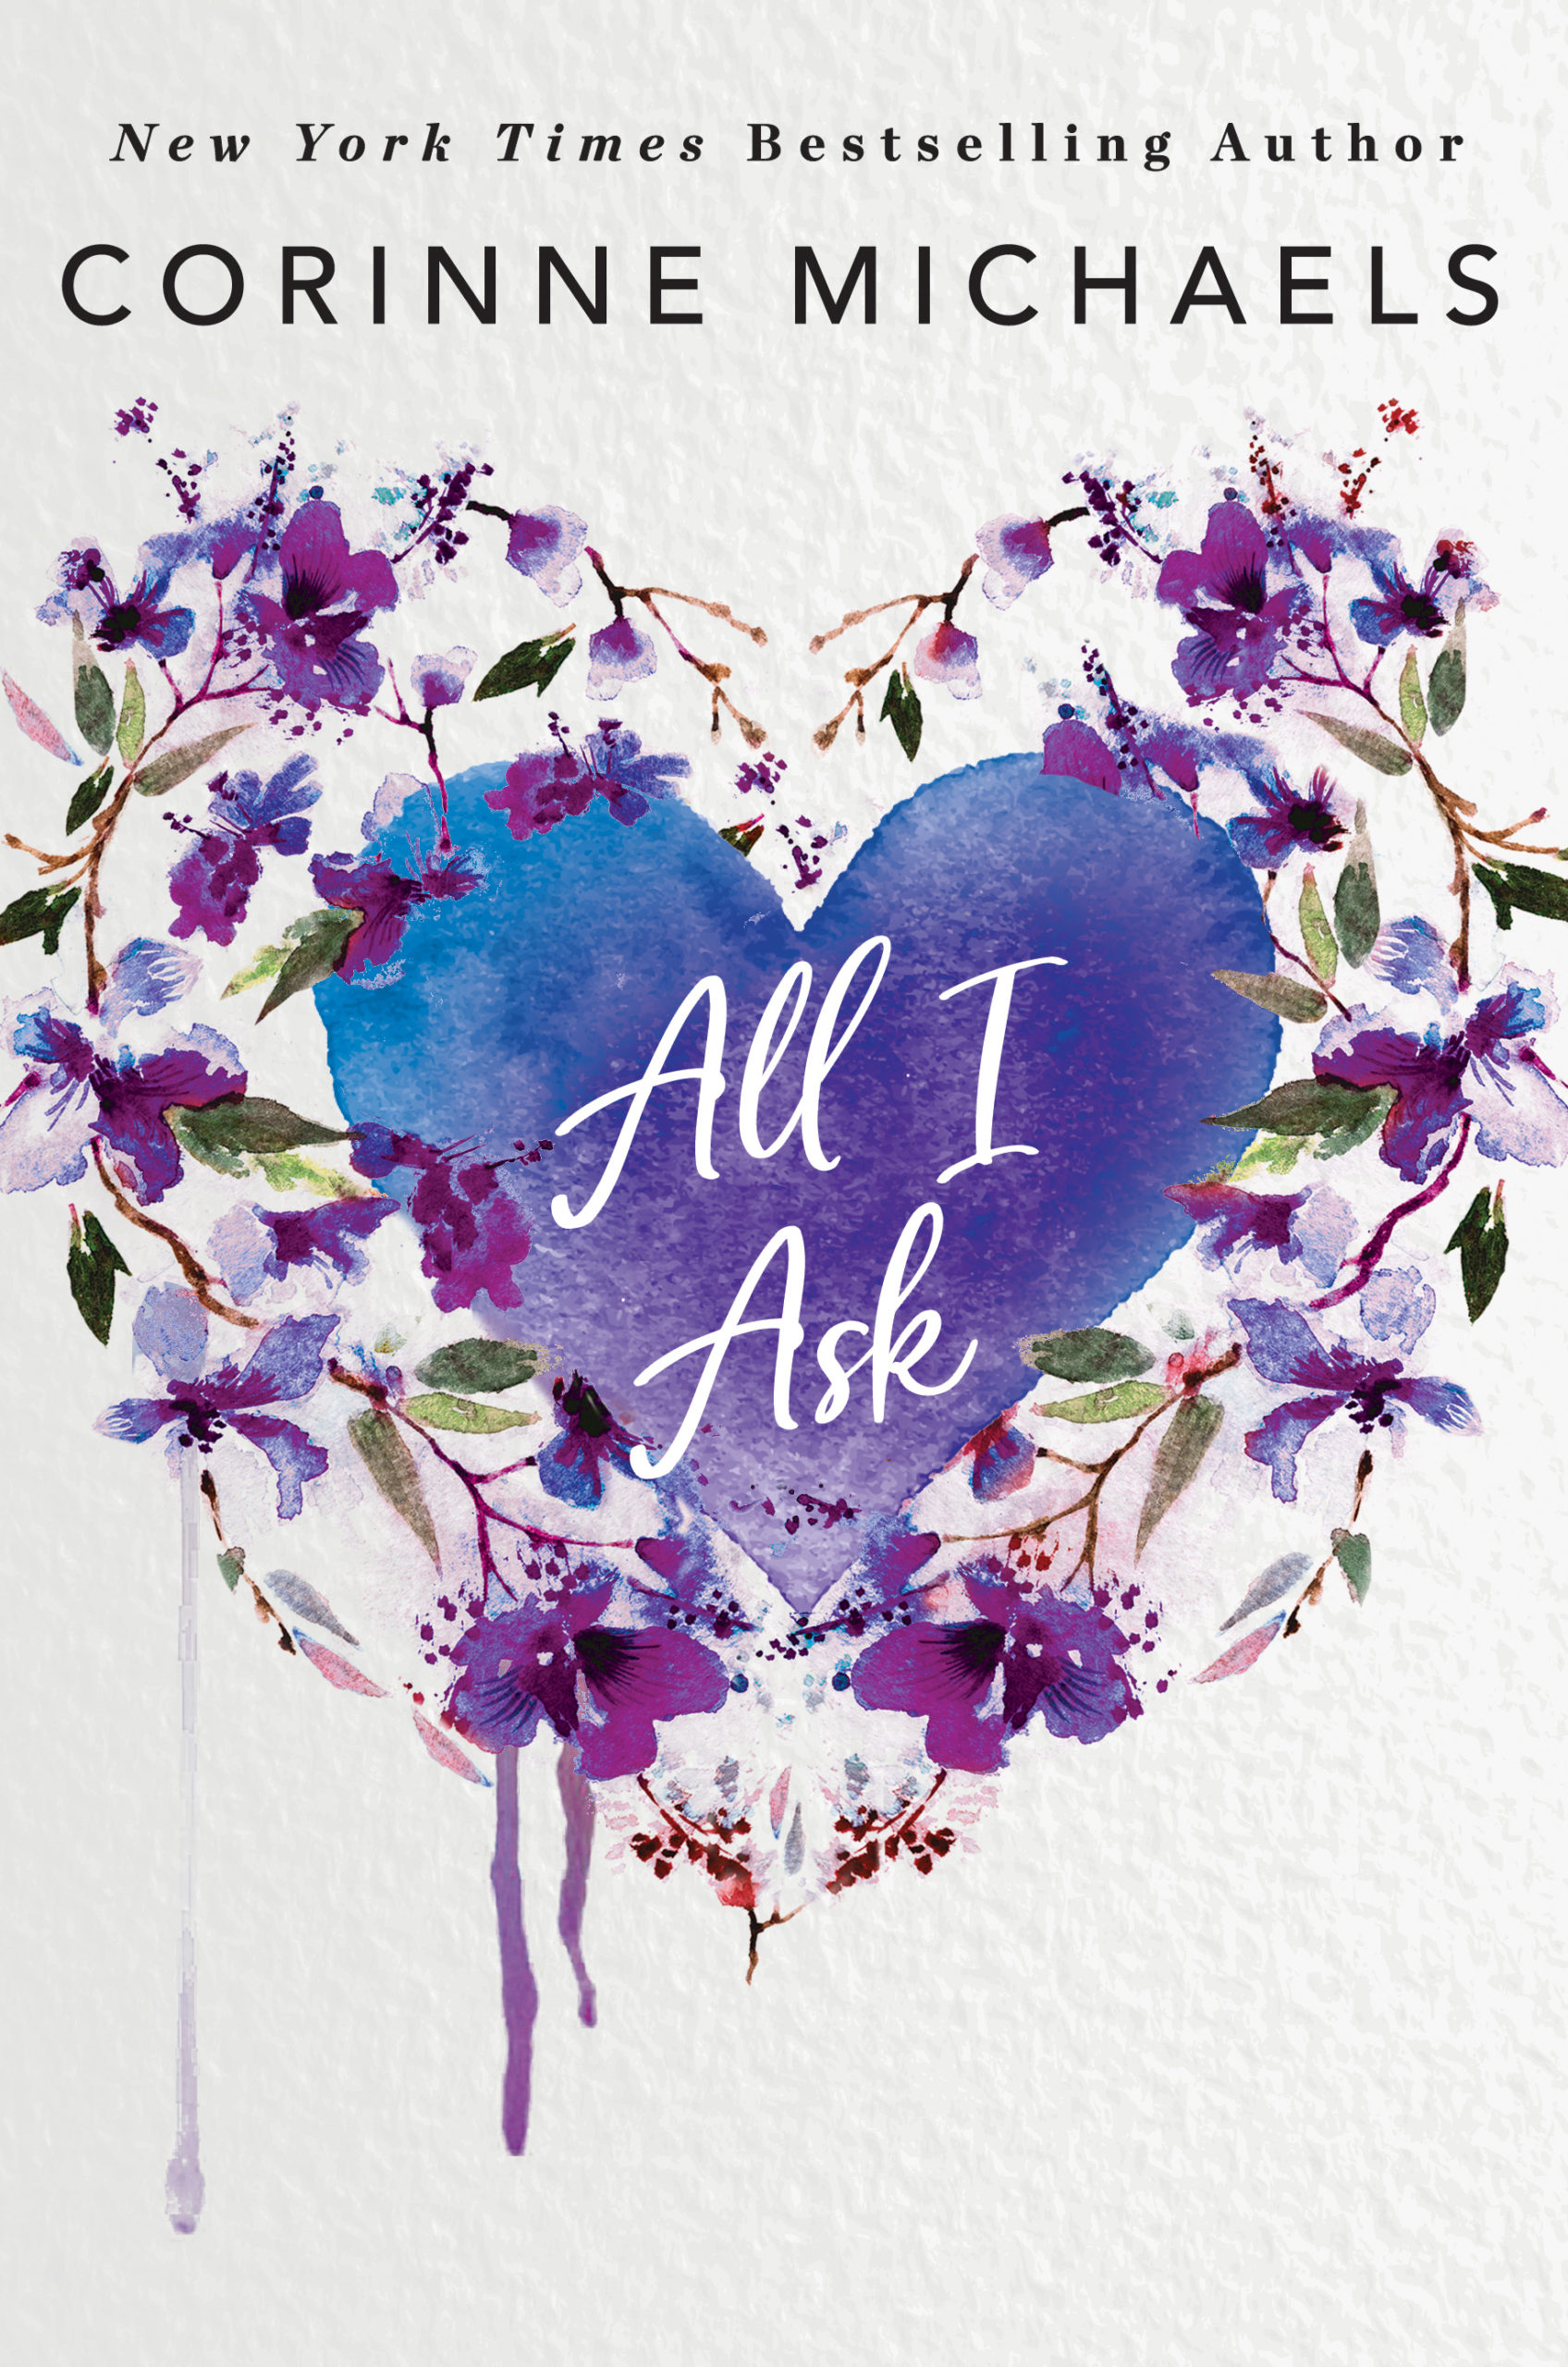 ALL I ASK Cover – Corinne Michaels